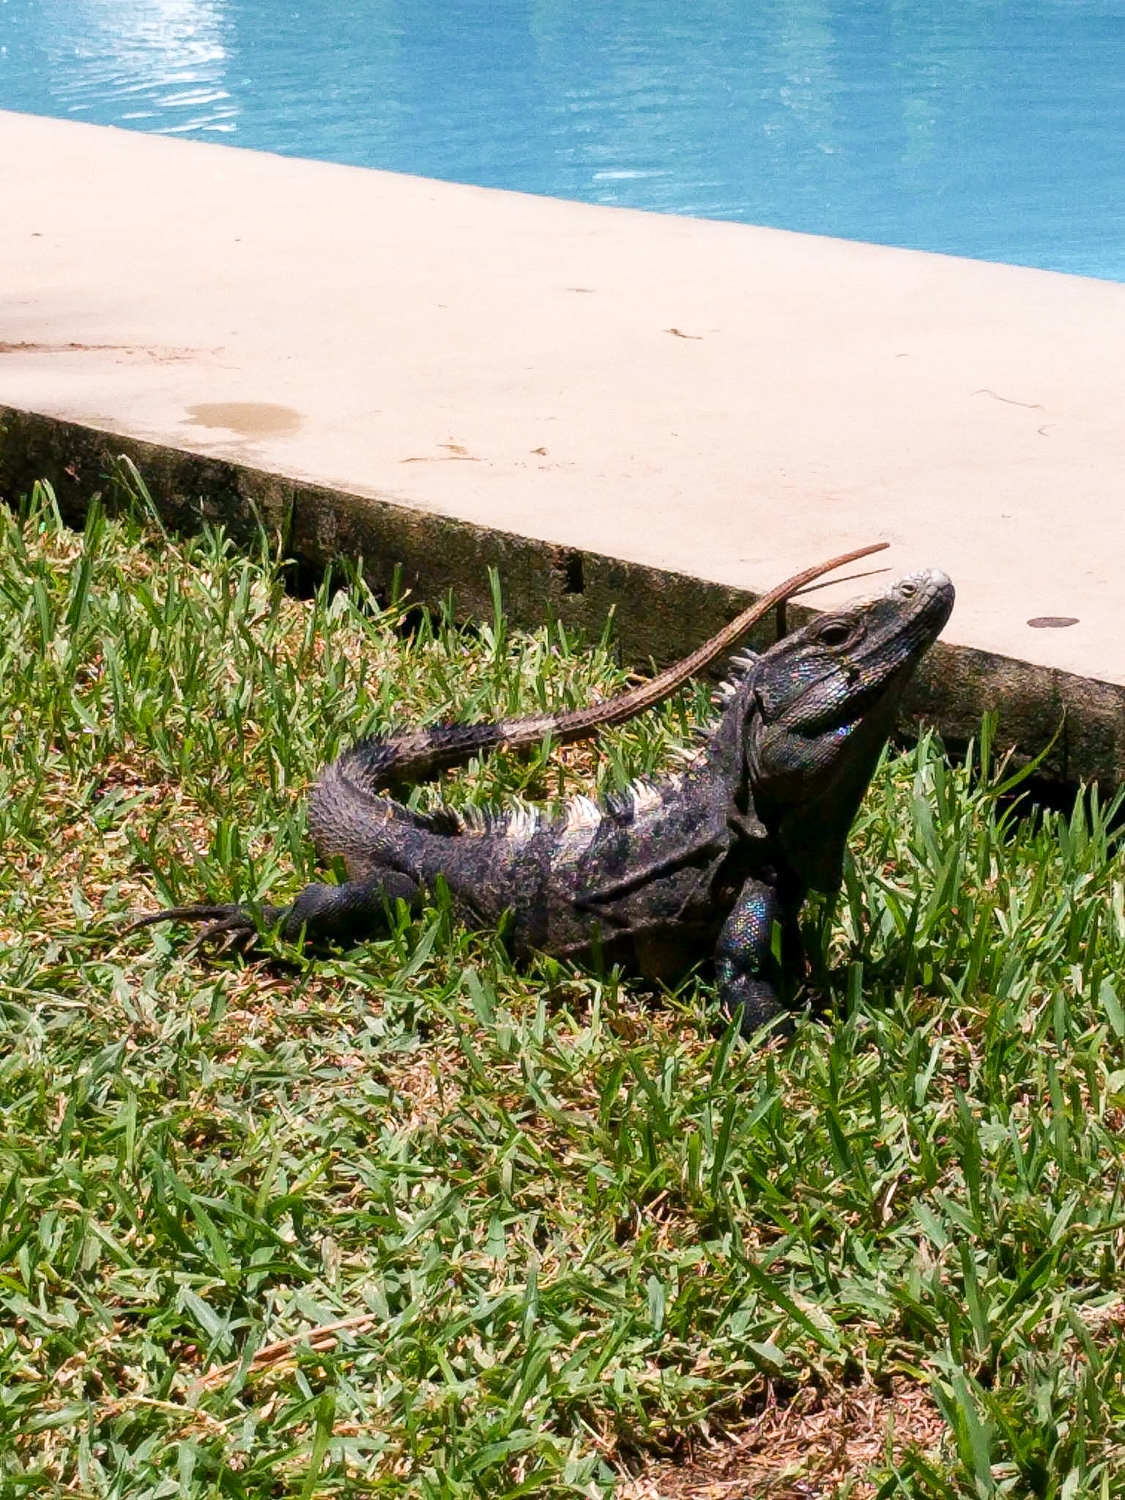 Reptile by the pool